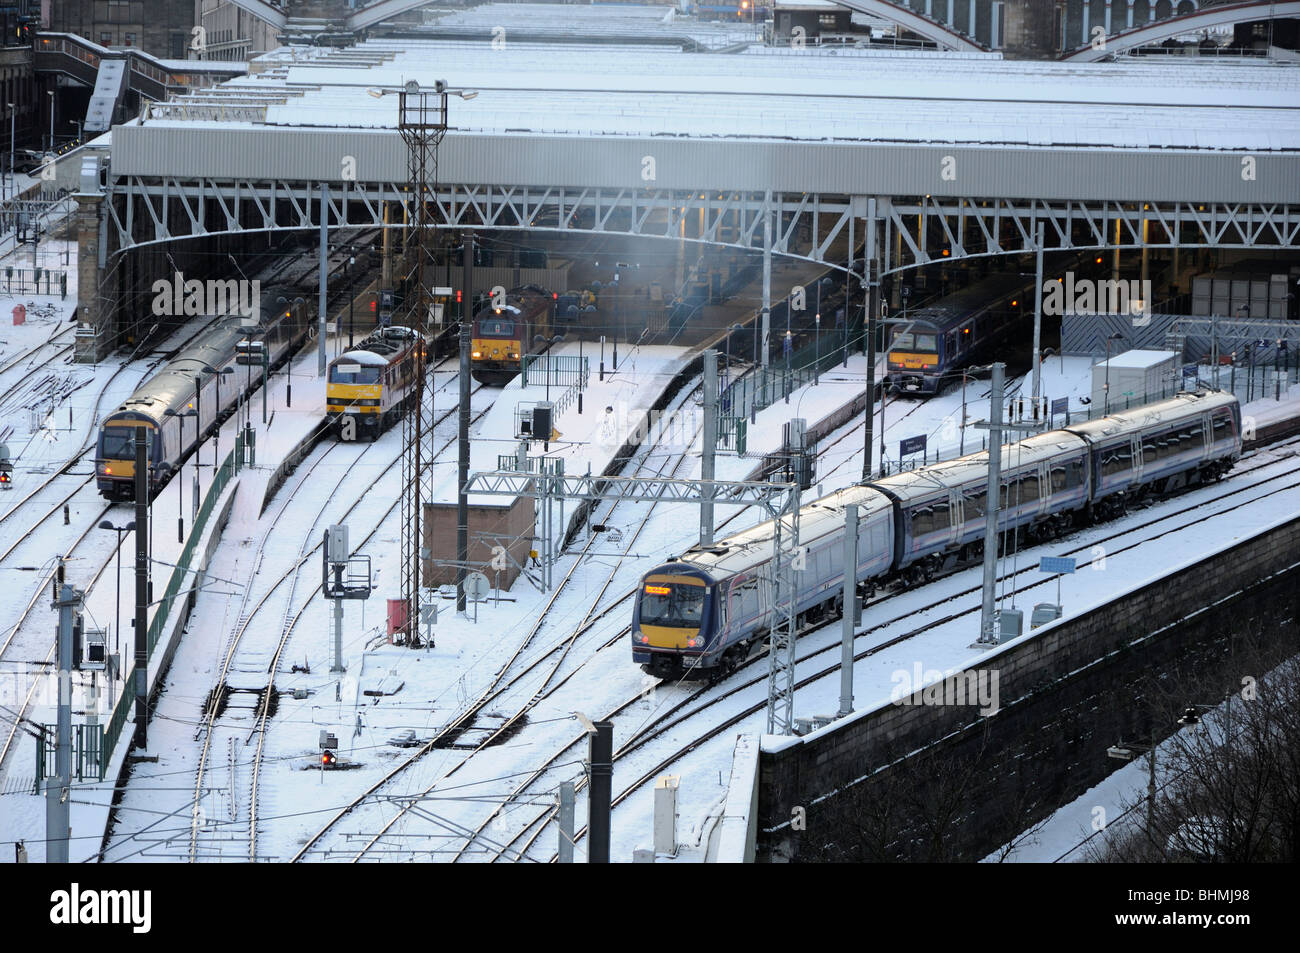 Commuter train leaving the east end of Waverley Station, Edinburgh, Scotland, UK. - Stock Image